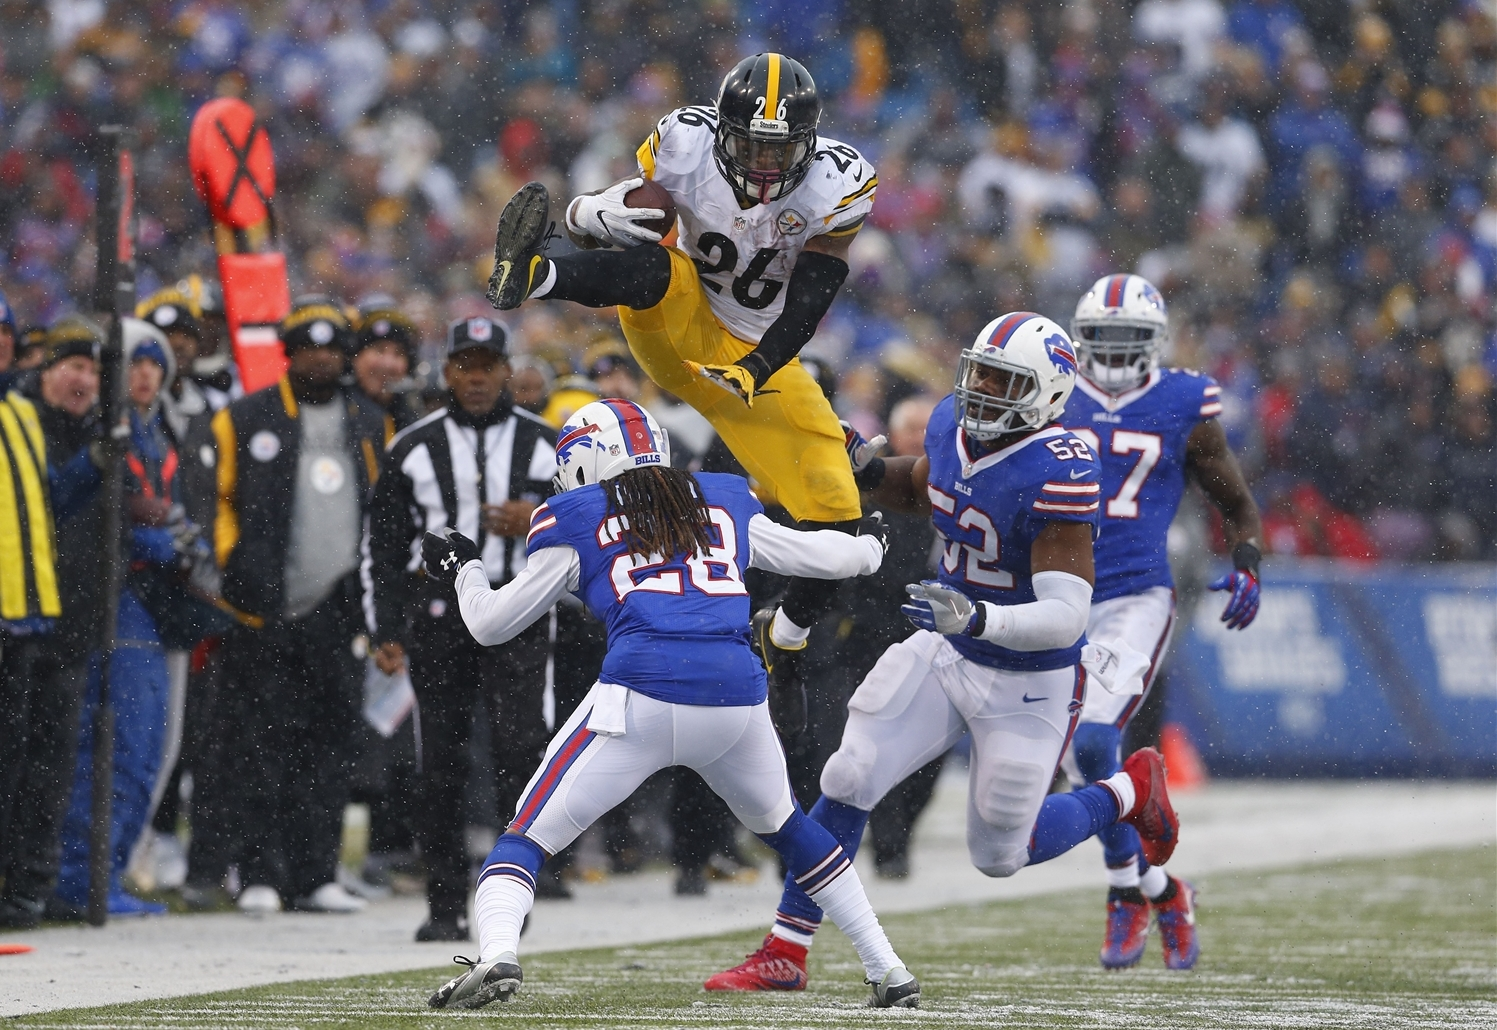 Le'Veon Bell goes up in an attempt to avoid a tackle. (Mark Mulville/Buffalo News)